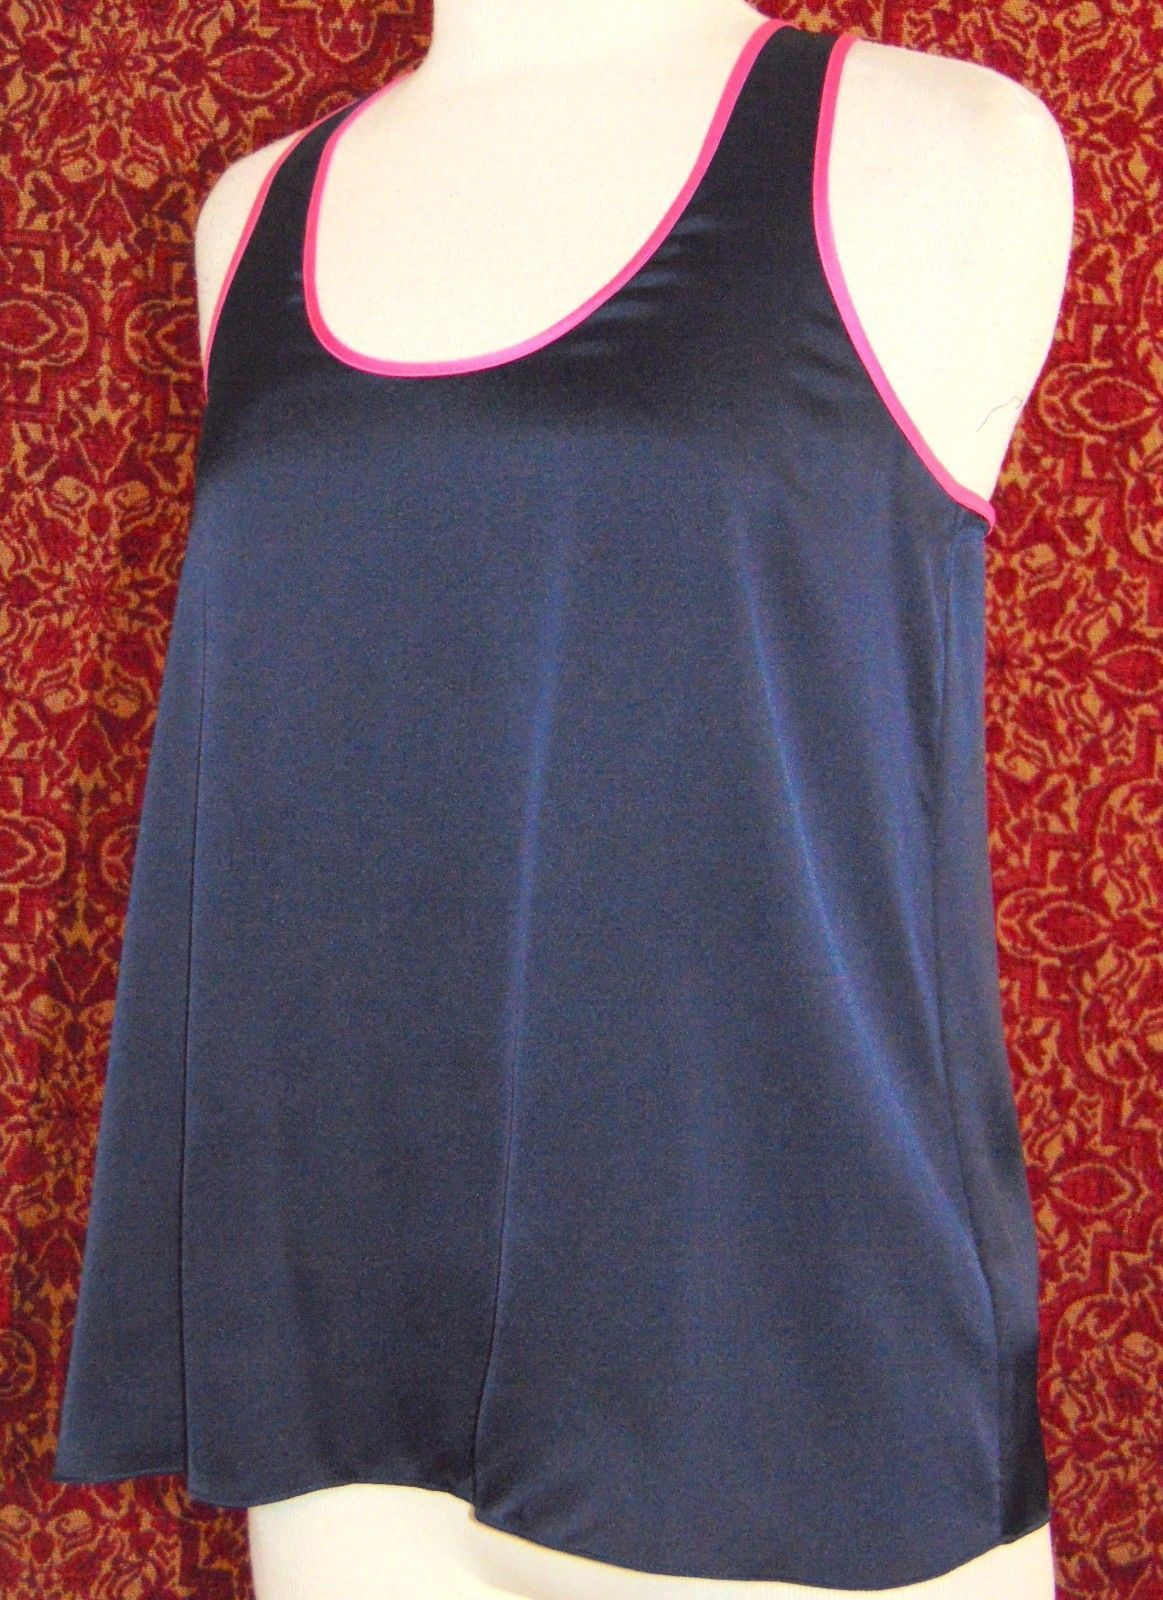 JUICY COUTURE Navy satin sleeveless tank blouse M (T41-03F8G) image 2